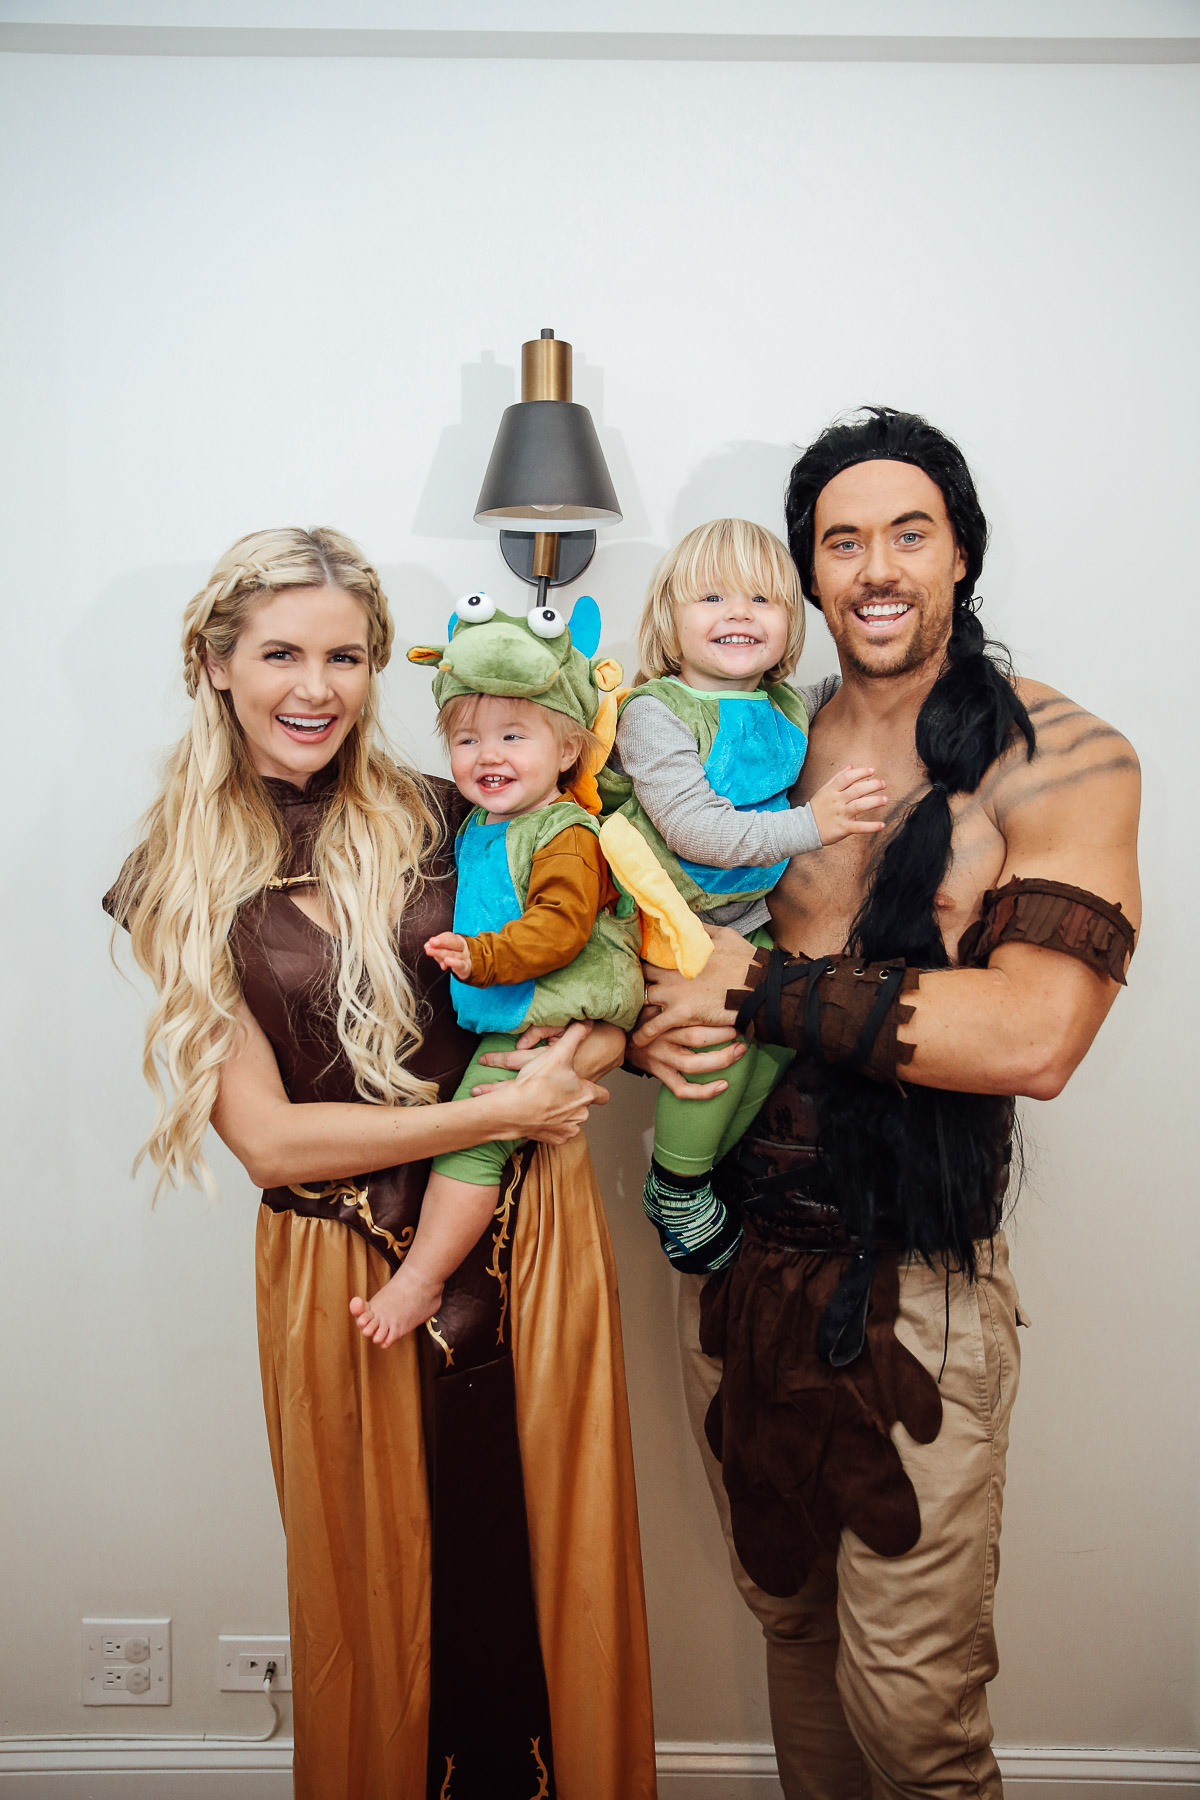 Pin the Photo  sc 1 st  Barefoot Blonde & Halloween Weekend with 2 kids! - Barefoot Blonde by Amber Fillerup Clark